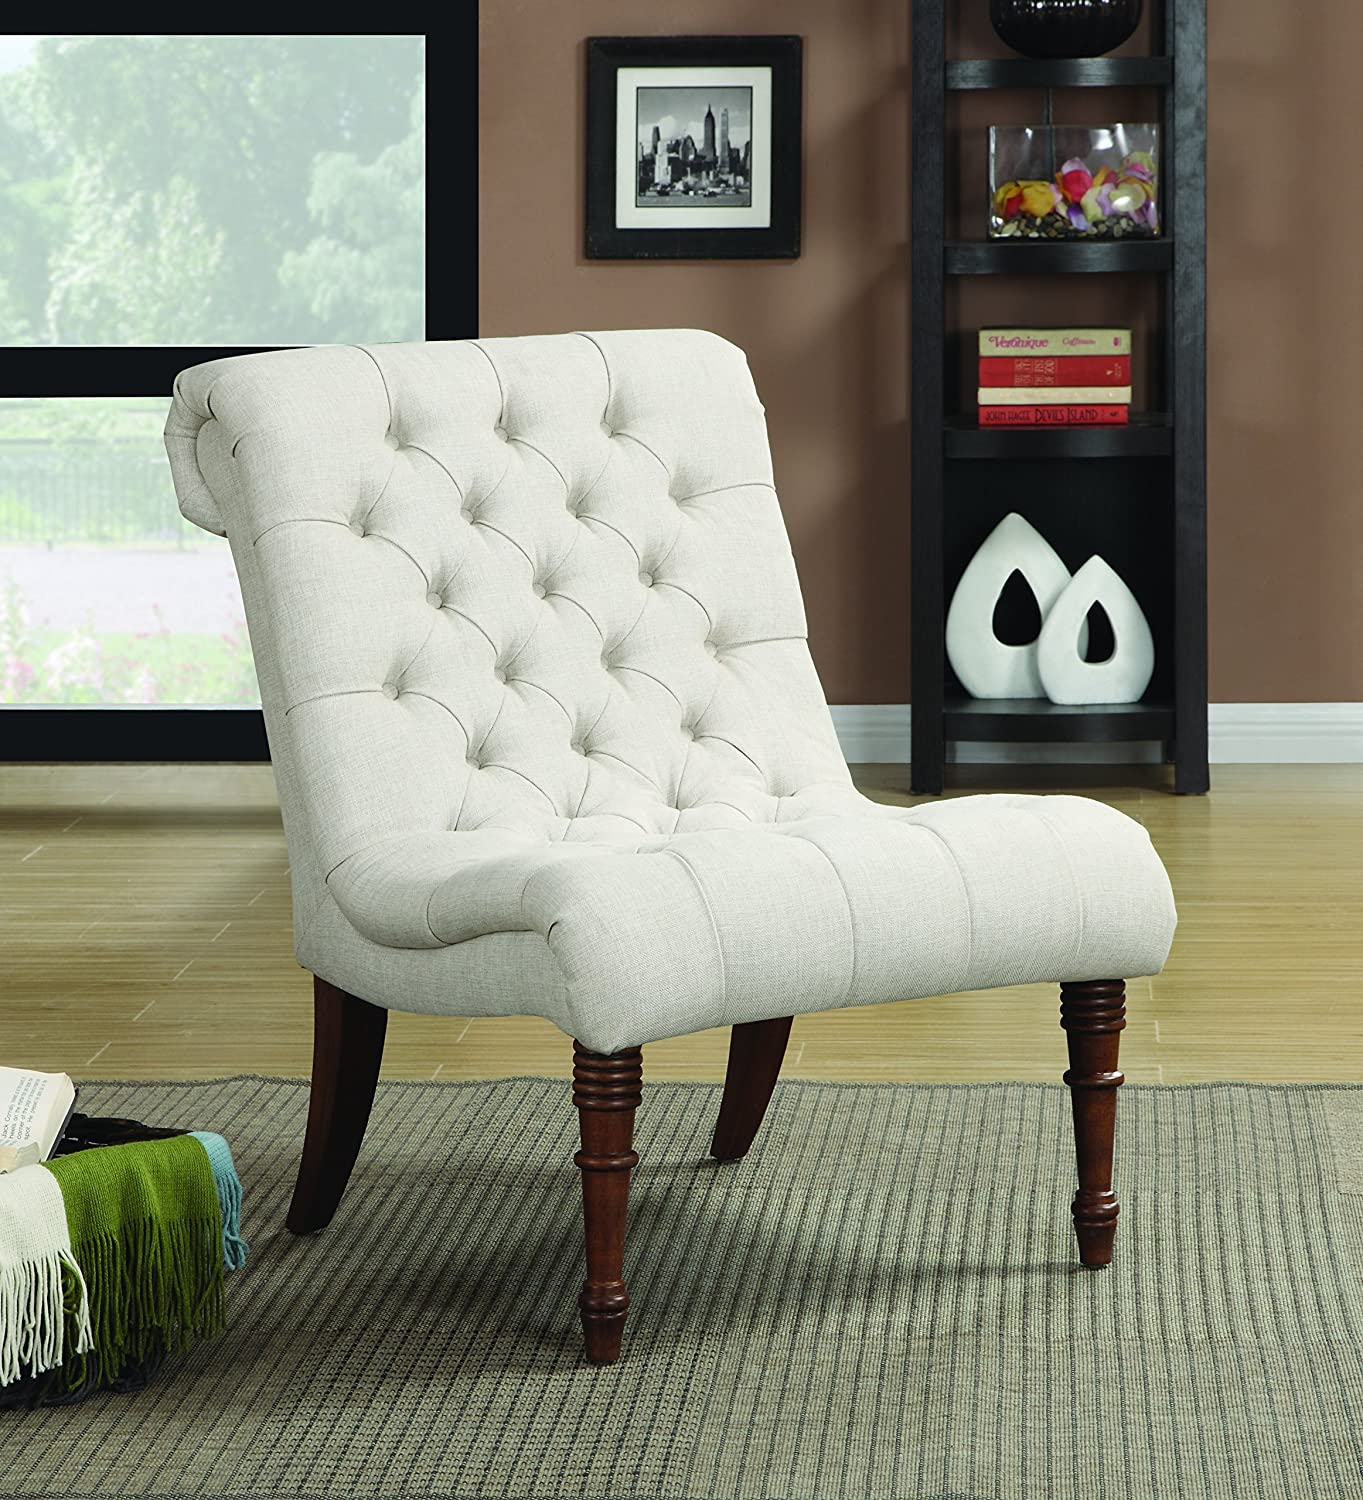 Coaster Home Furnishings Casual Accent Chair, Light Brown/White 902176ii